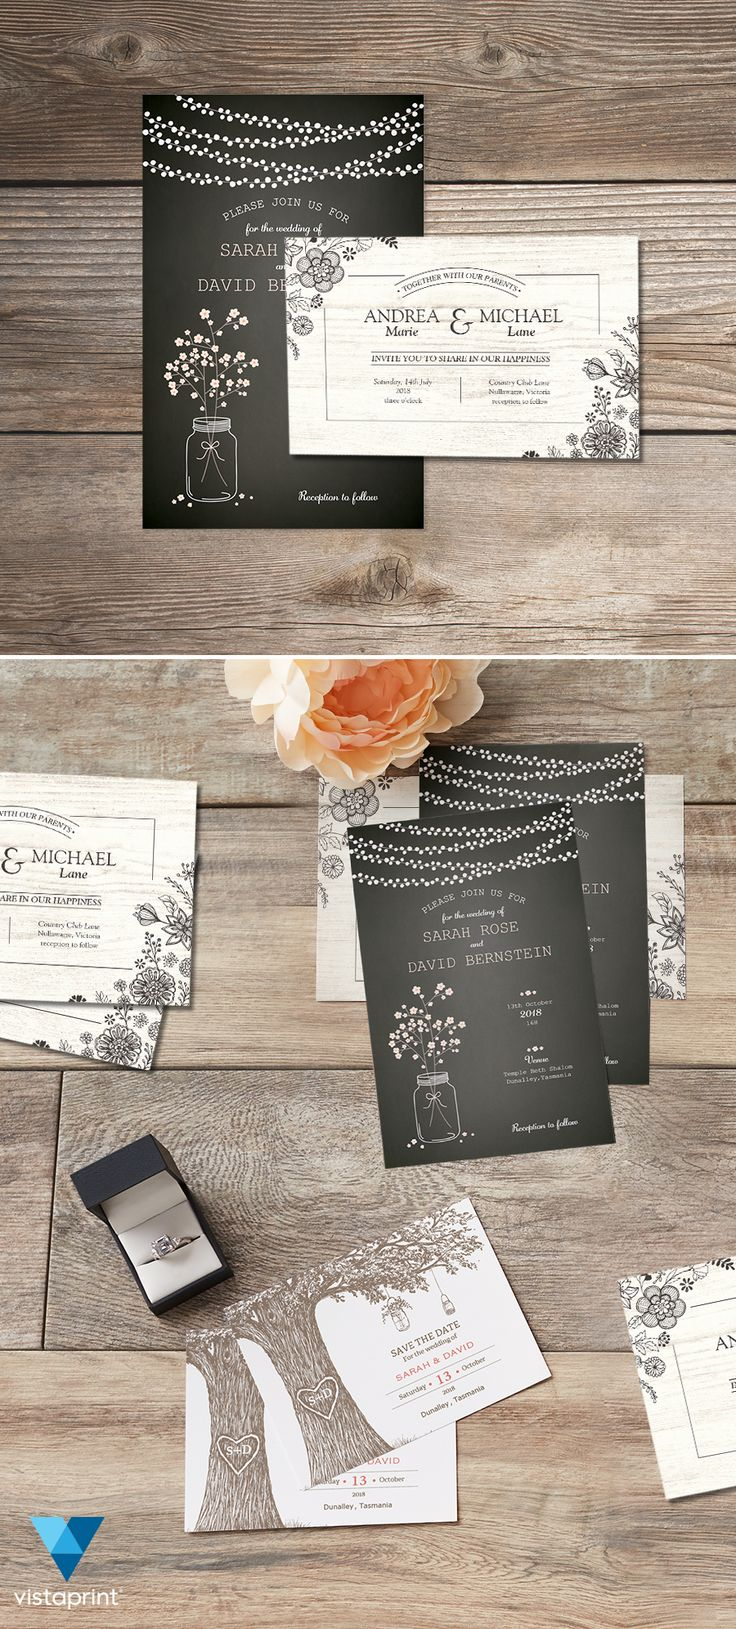 keralwedding card wordings in english%0A Get ready to fall in love with our Wedding Sample Kit  Contains Invites   Save the Dates  Thank You cards  u     more  plus a selection of paper stocks so  you can